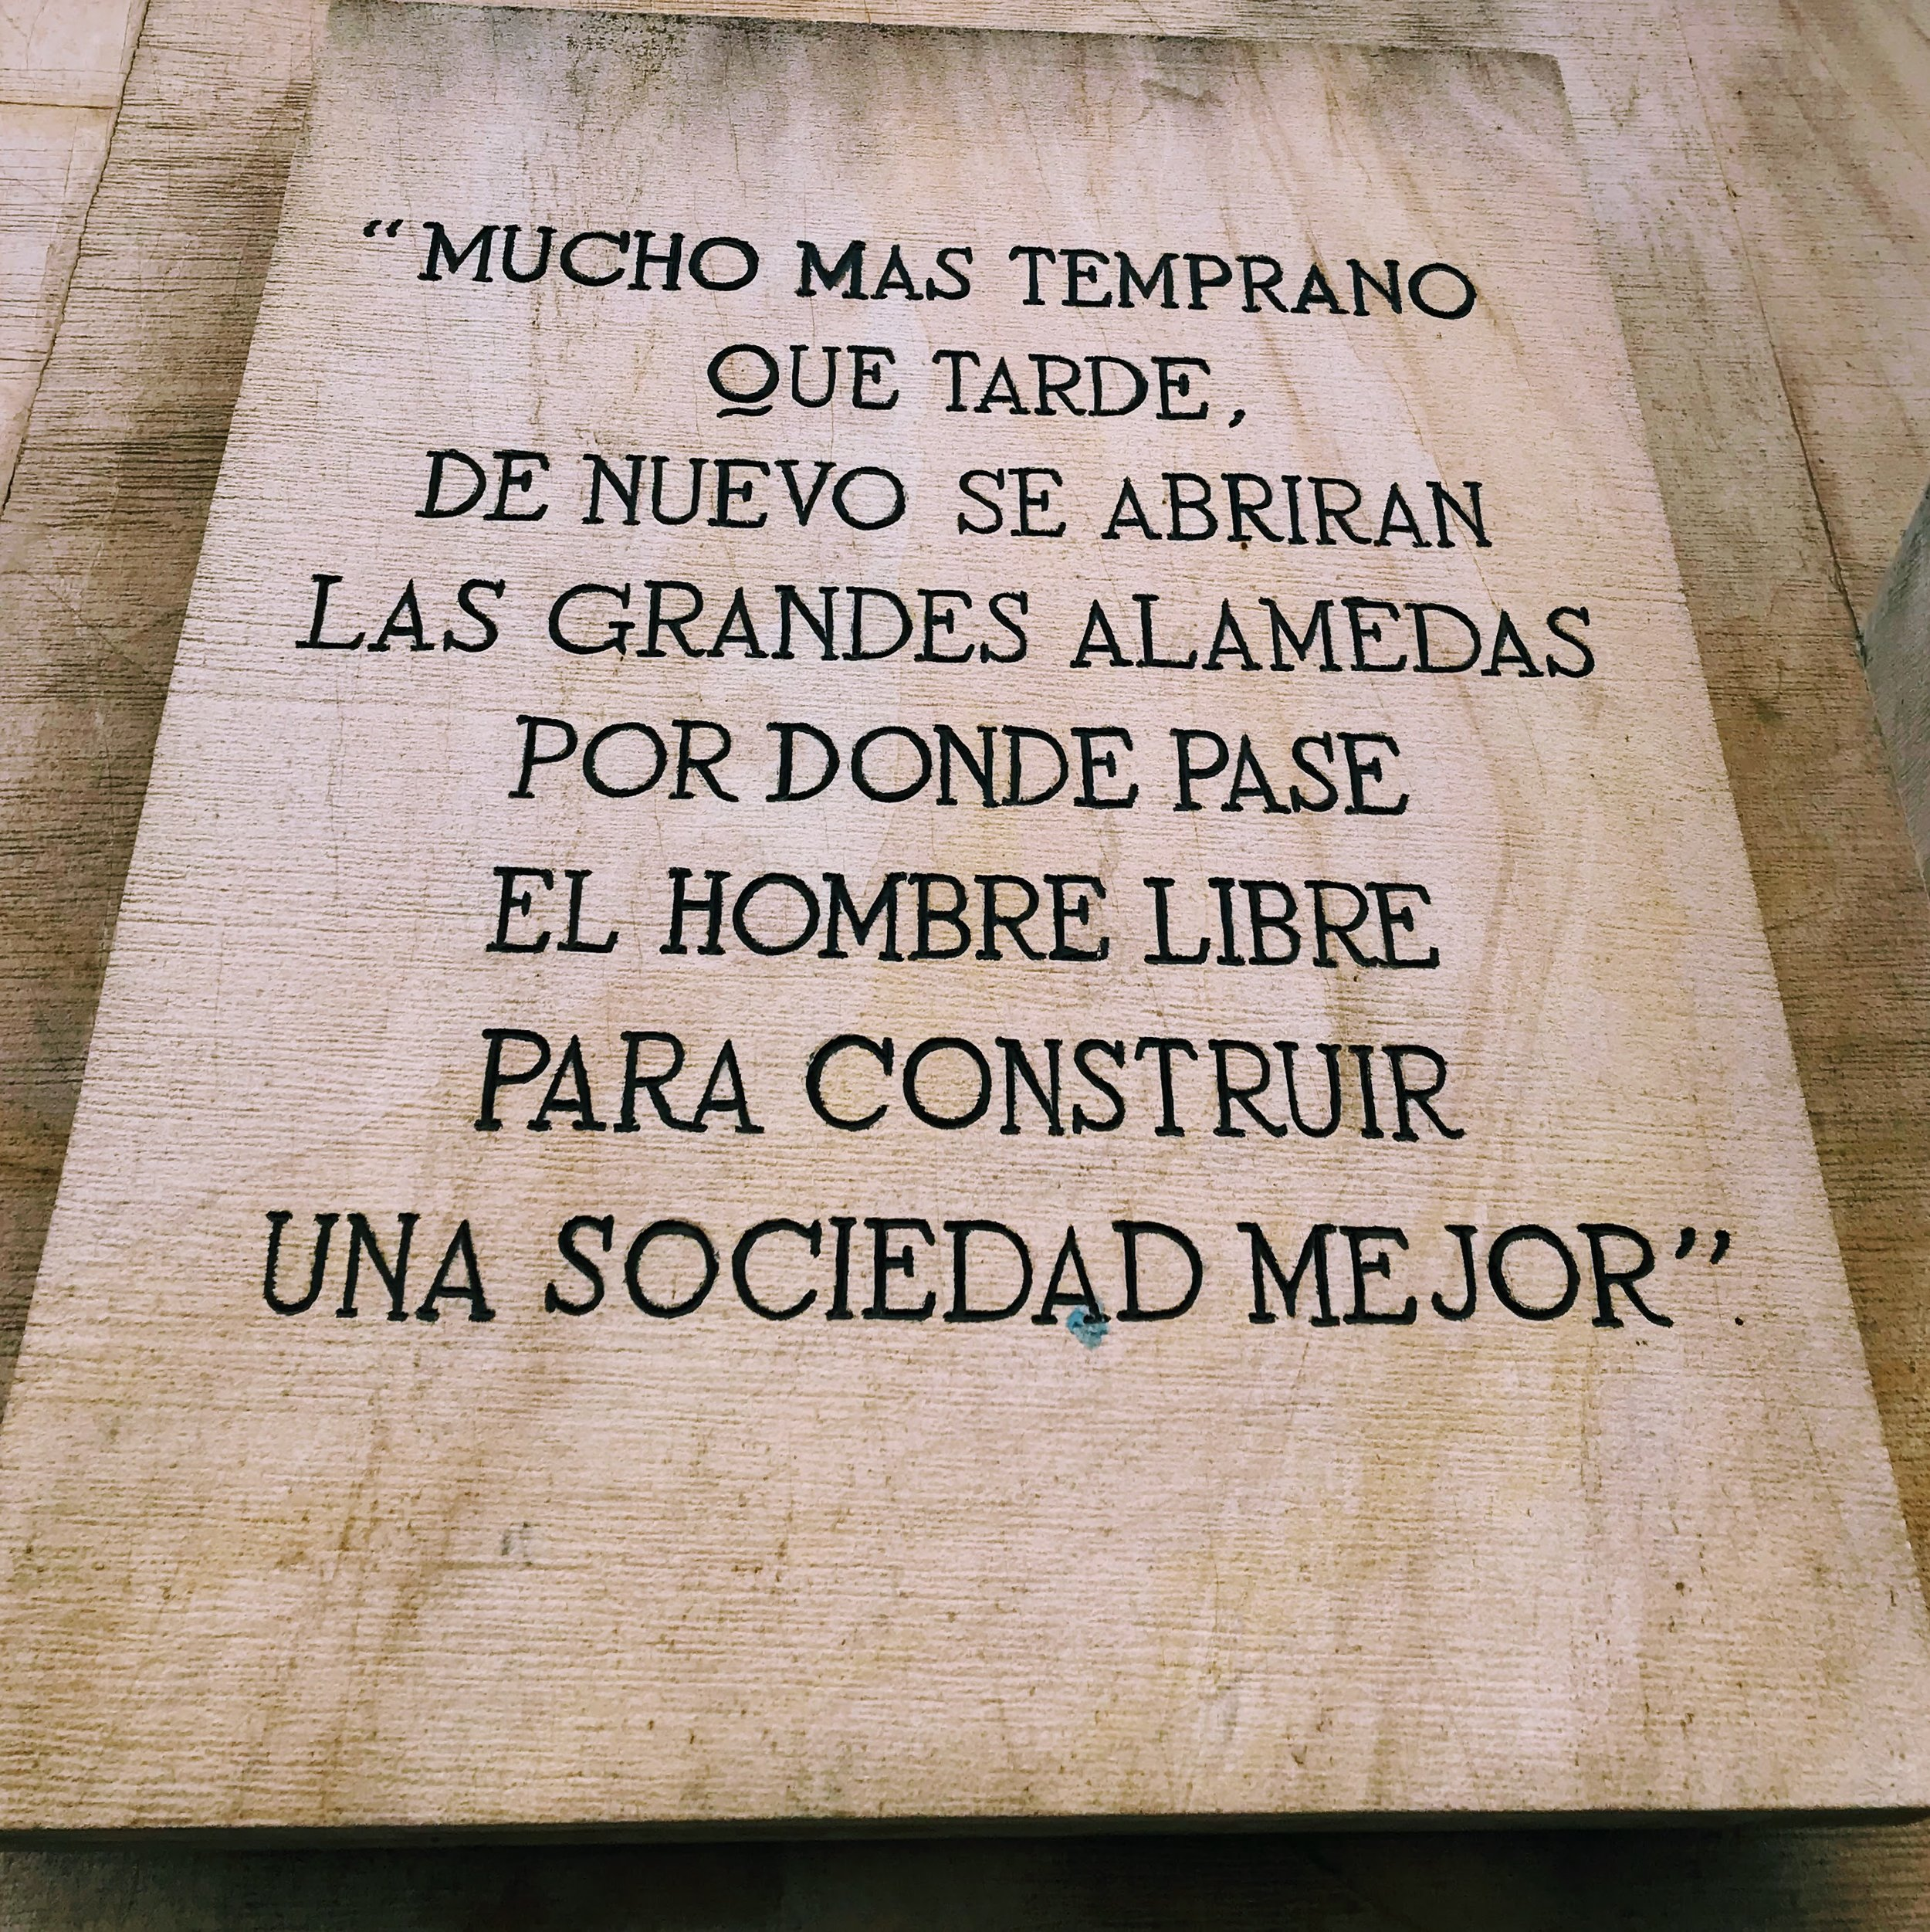 This roughly translates to: Sooner or later, the great avenues will be opened again so that free men can create a better society.